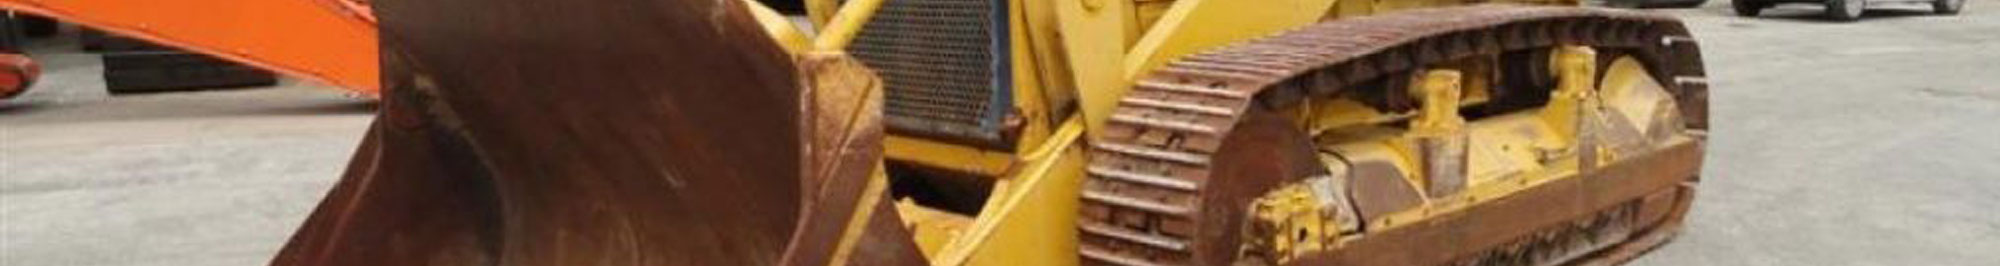 Komatsu Track Loader Undercarriage Replacement Parts